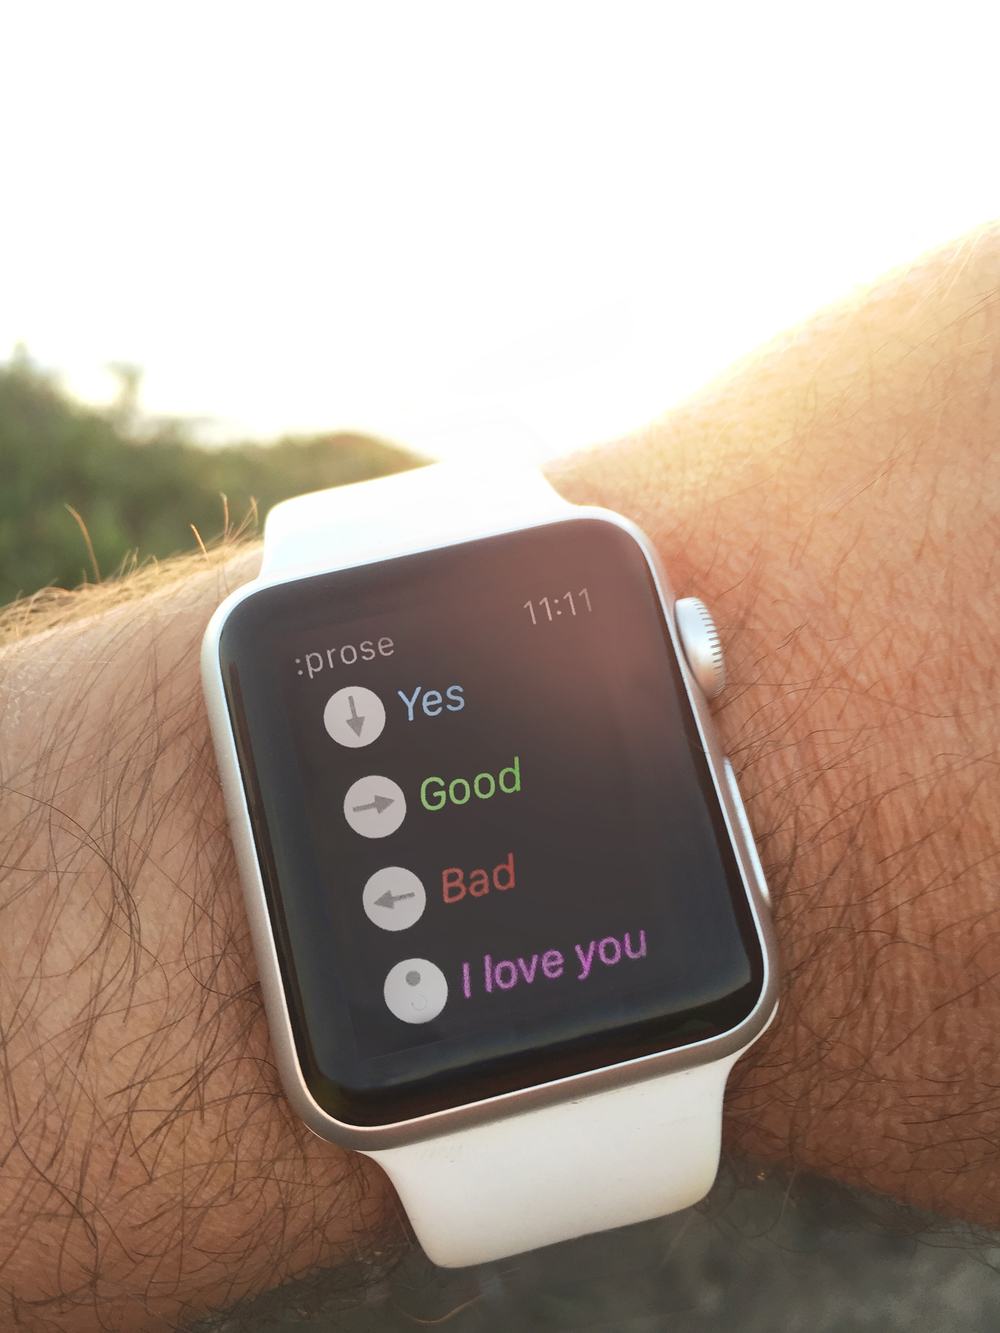 Smartstones :prose on Apple Watch. Remotely speak aloud by tapping your favorite phrases.